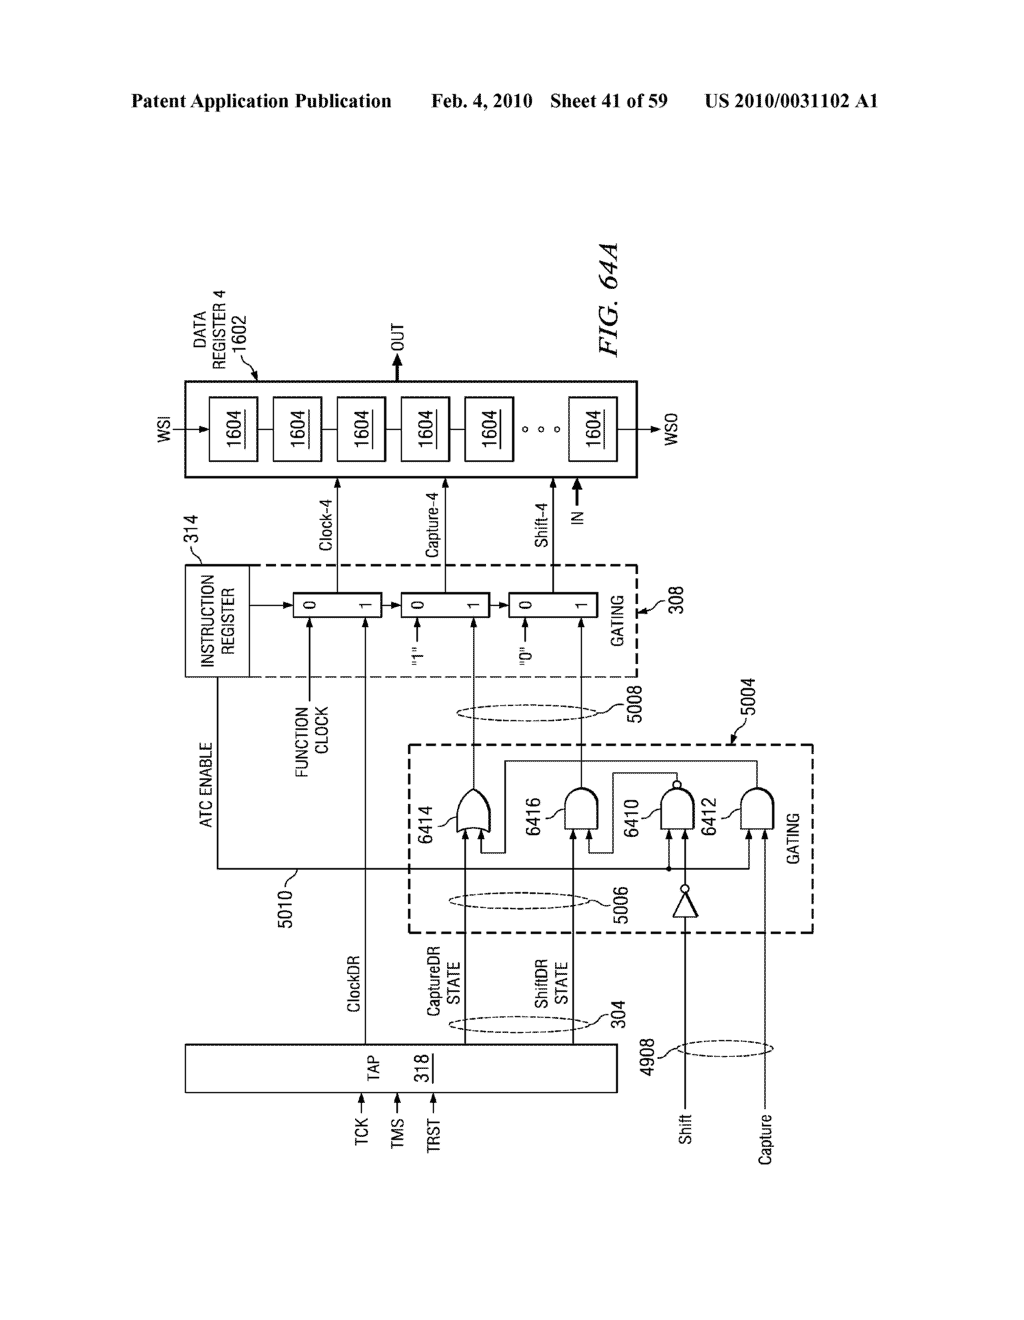 IEEE 1149.1 AND P1500 TEST INTERFACES COMBINED CIRCUITS AND PROCESSES - diagram, schematic, and image 42